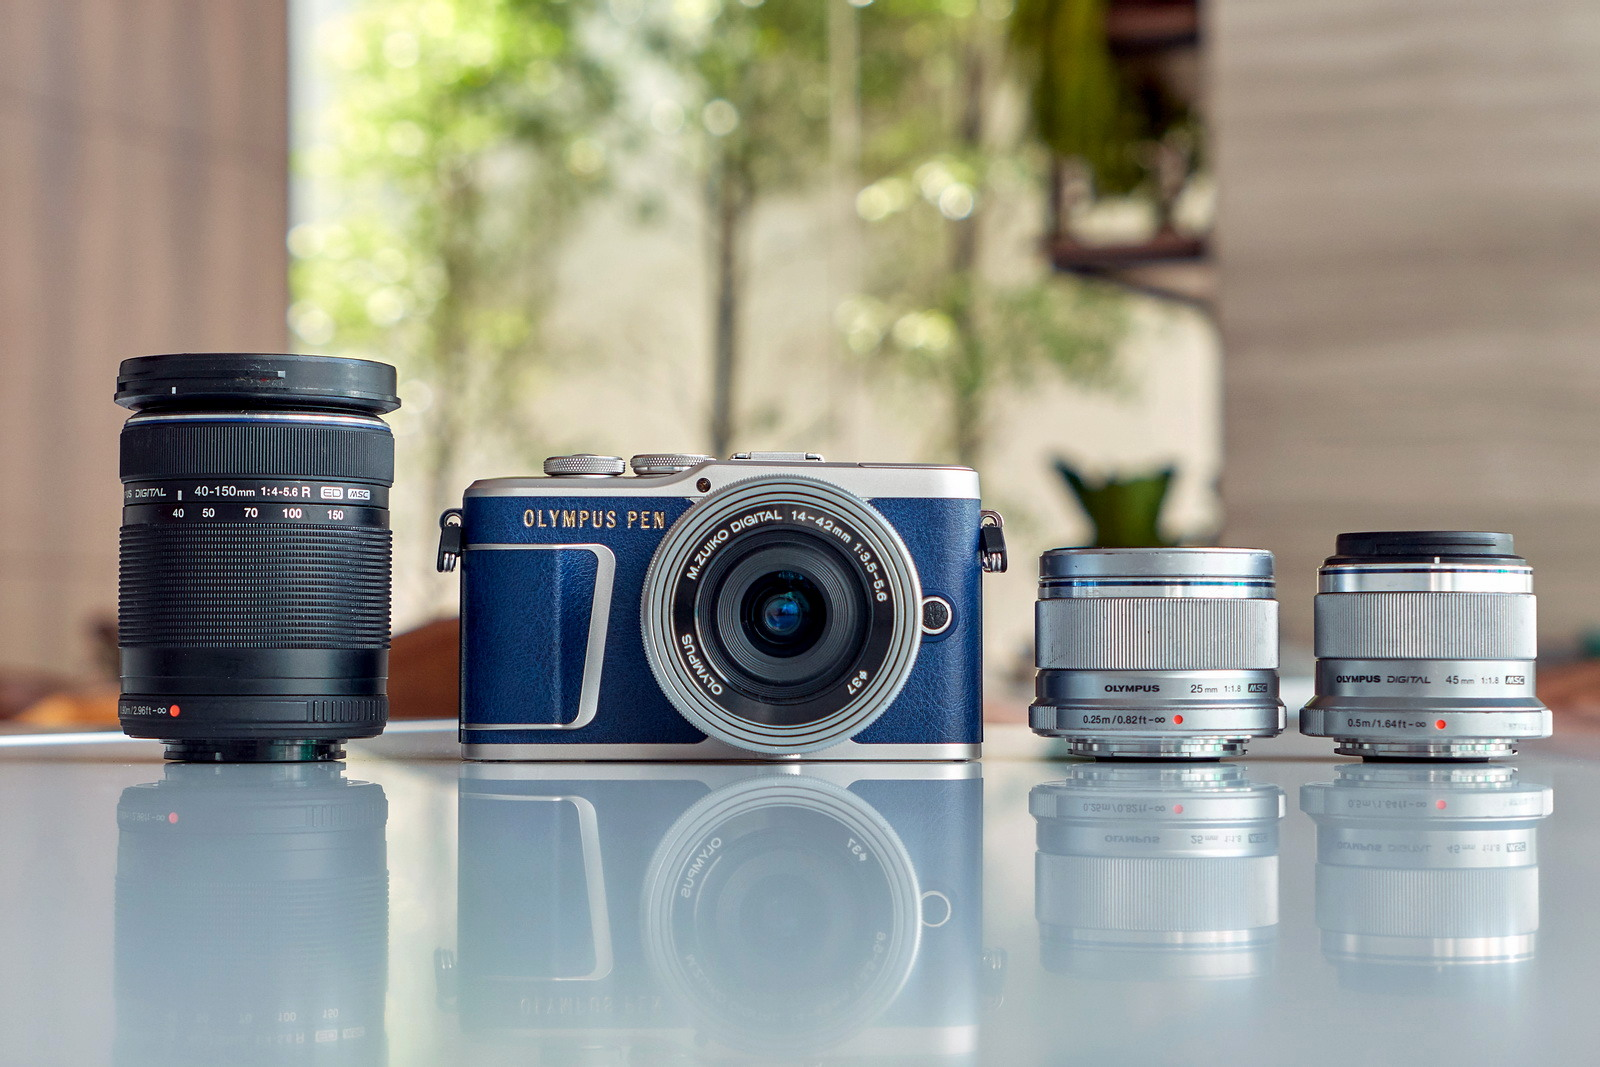 Review The 2018 Olympus E Pl9 Ming Thein Photographer Om D M10 Mark Ii Kit 40 150mm Based On Specifications Is Very Similar To Iii In Terms Of